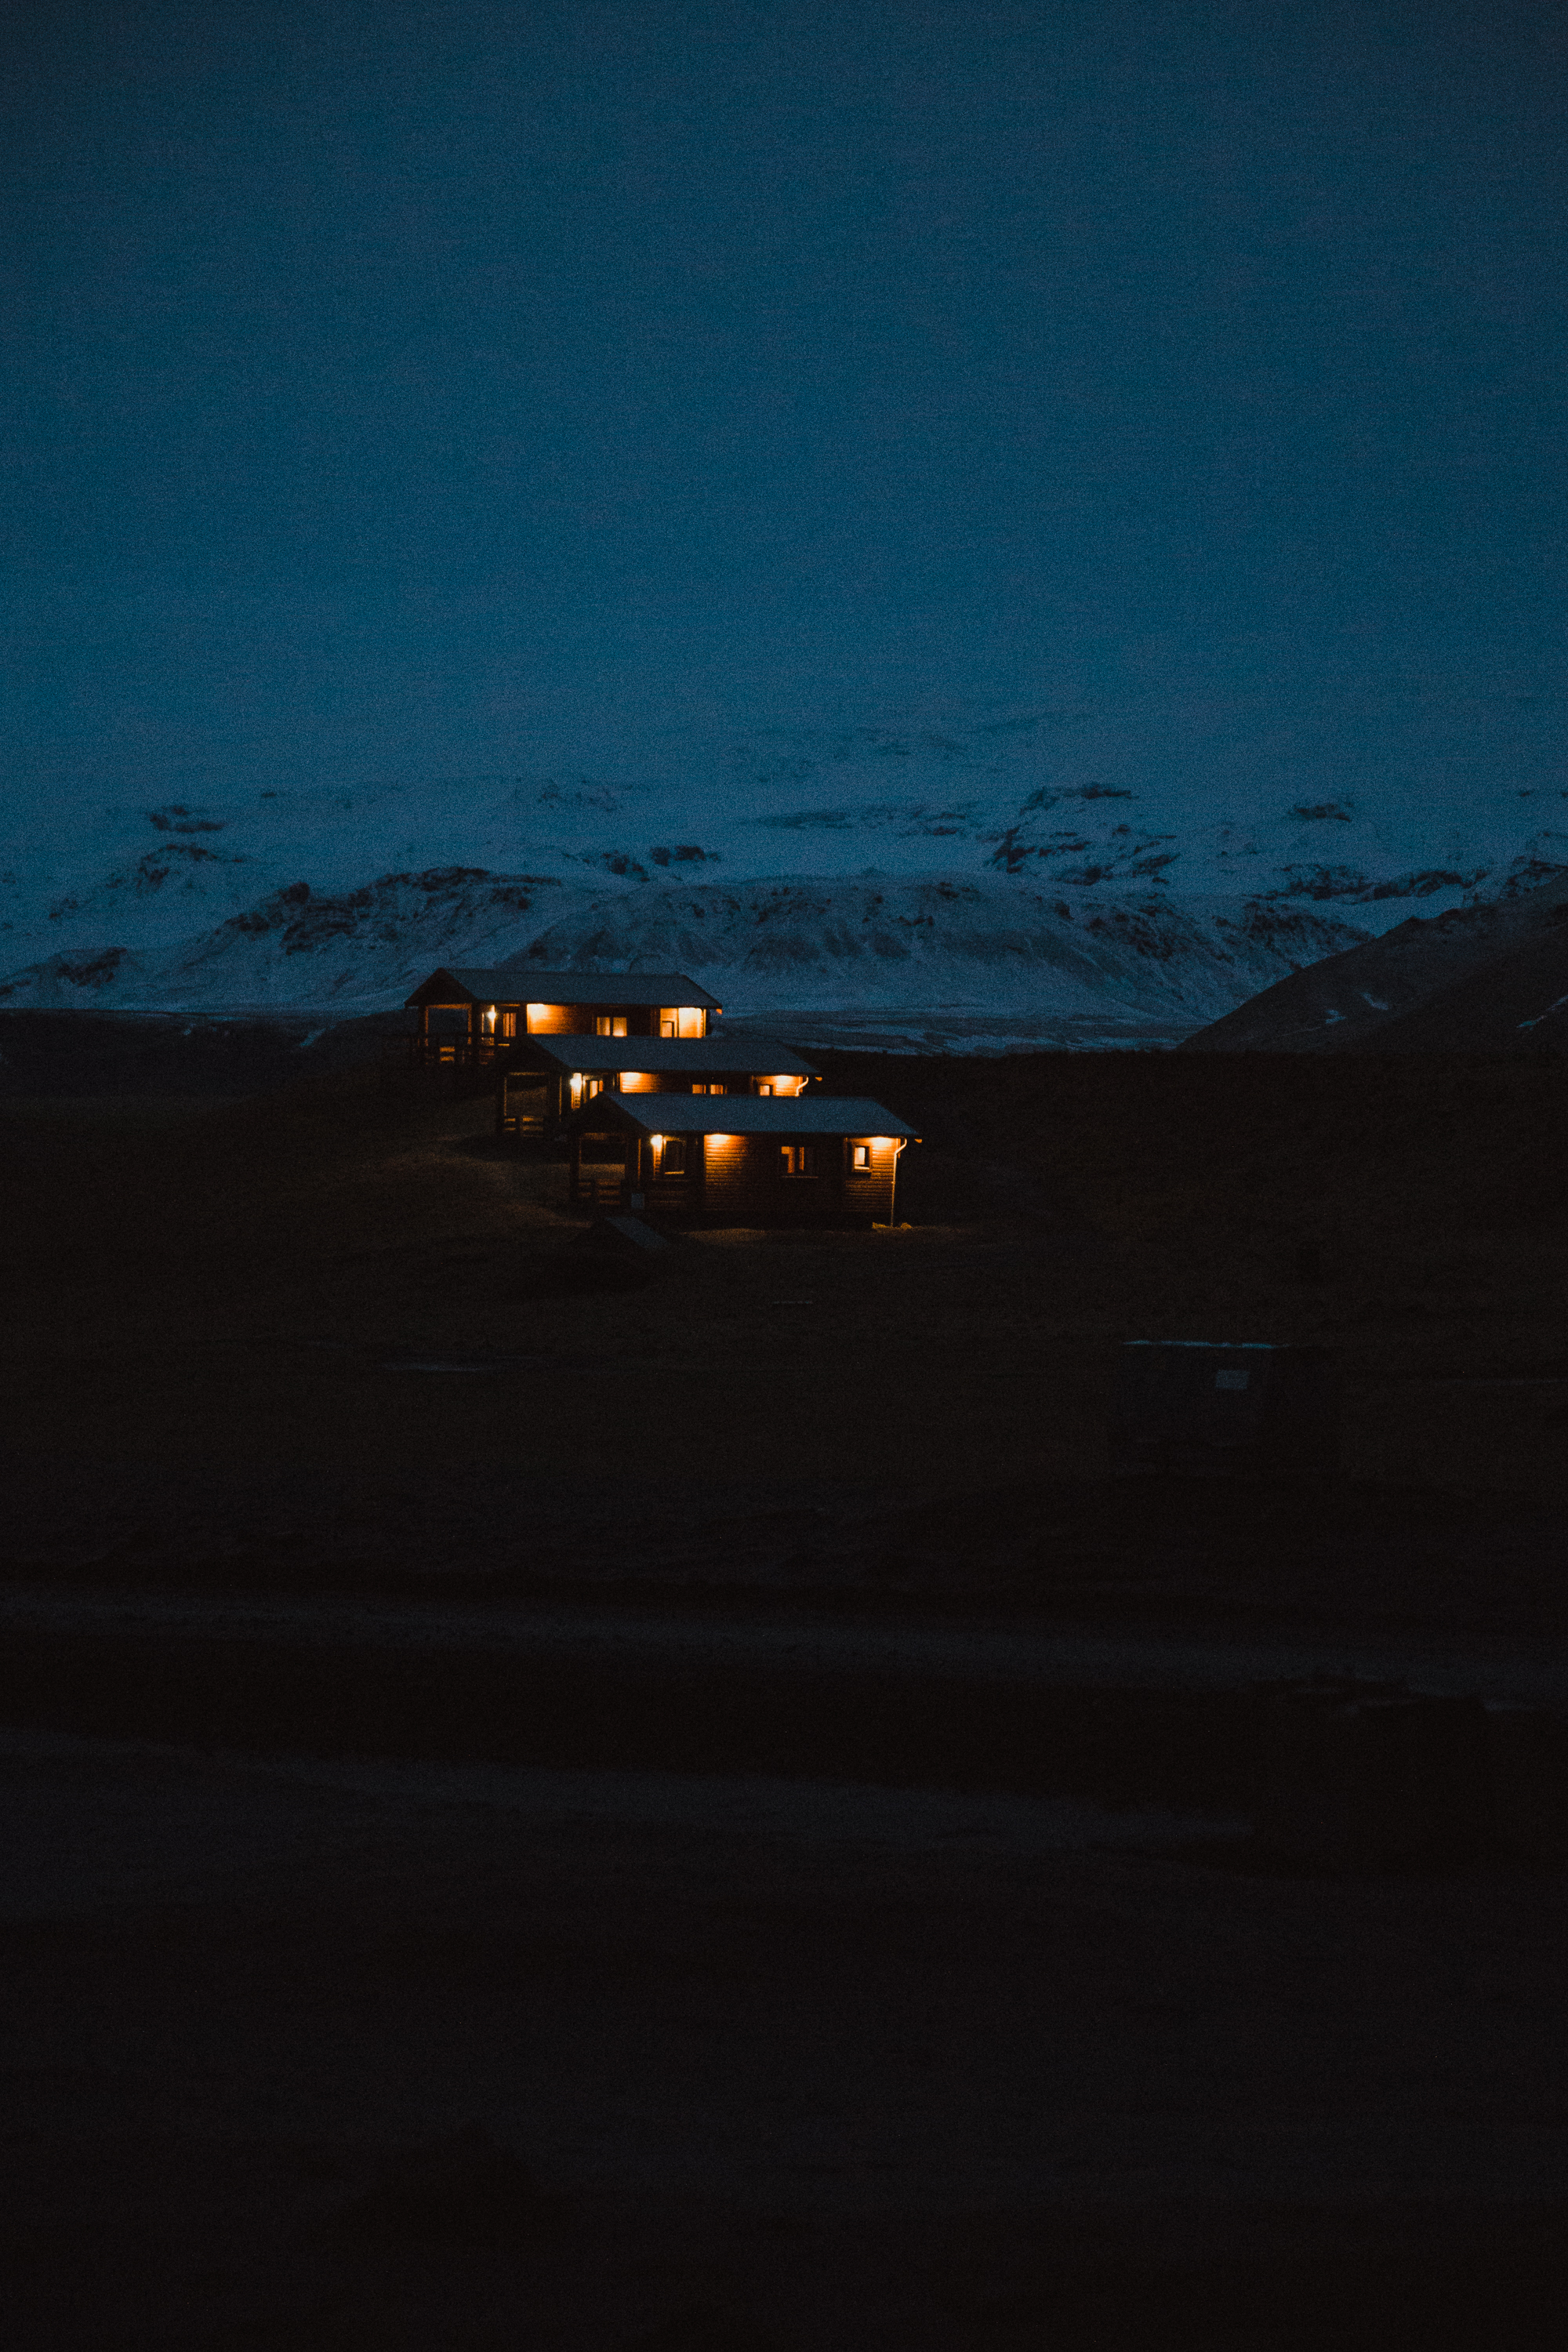 The cabins were so beautiful in the dark.